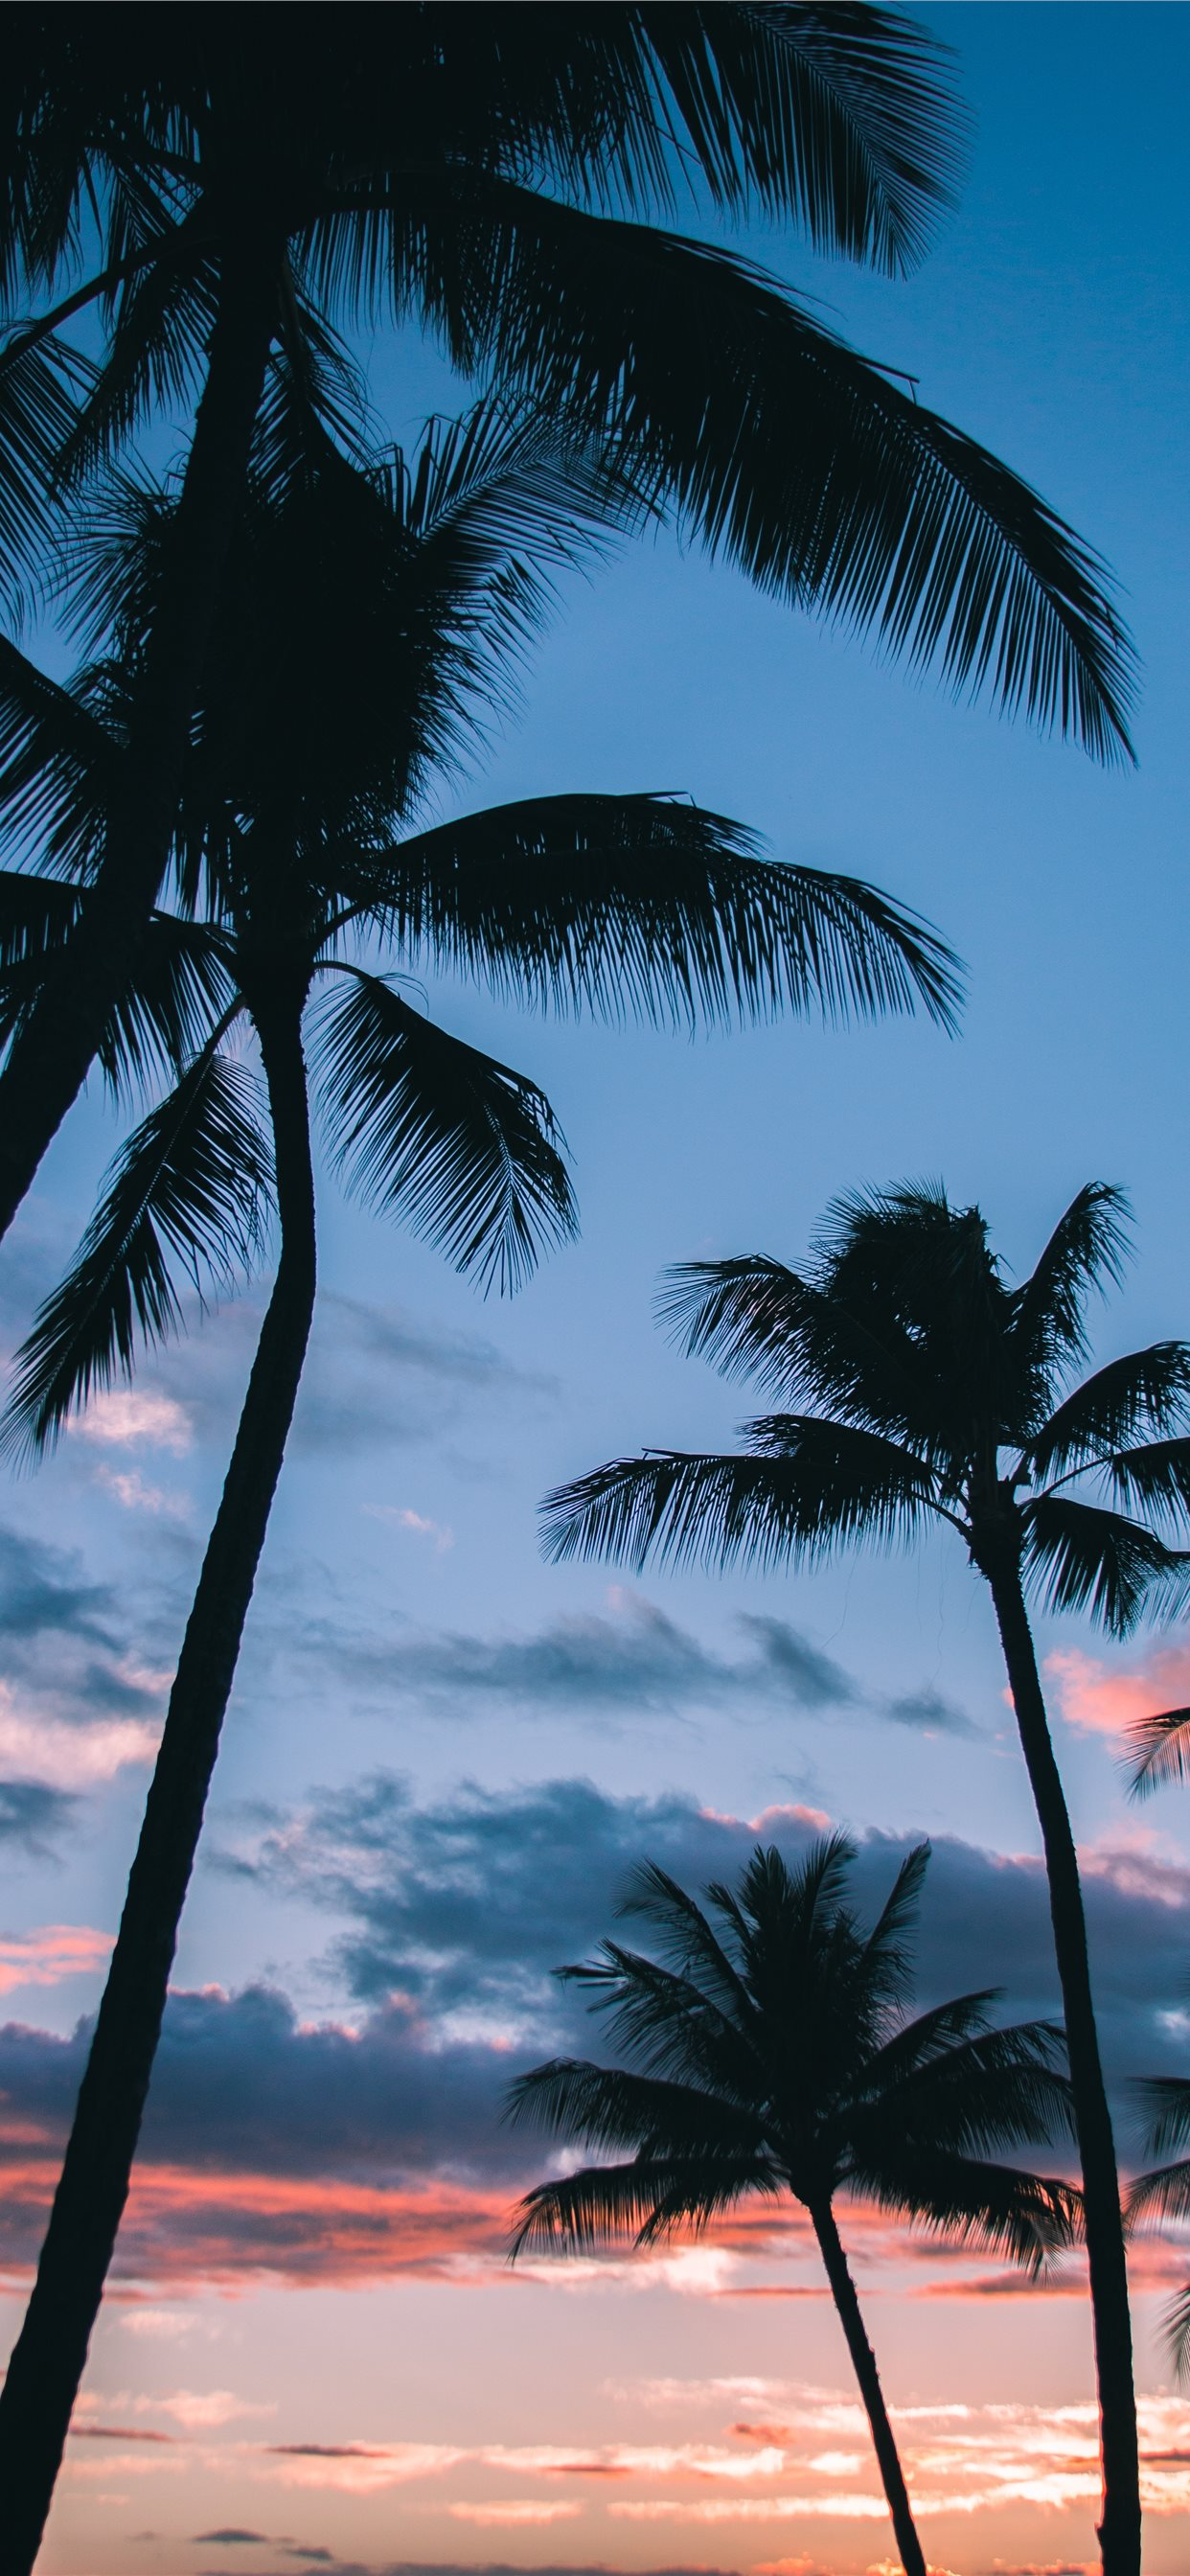 Palm Trees In Paradise Iphone 8 Wallpaper - Palm Tree Wallpaper Iphone X , HD Wallpaper & Backgrounds